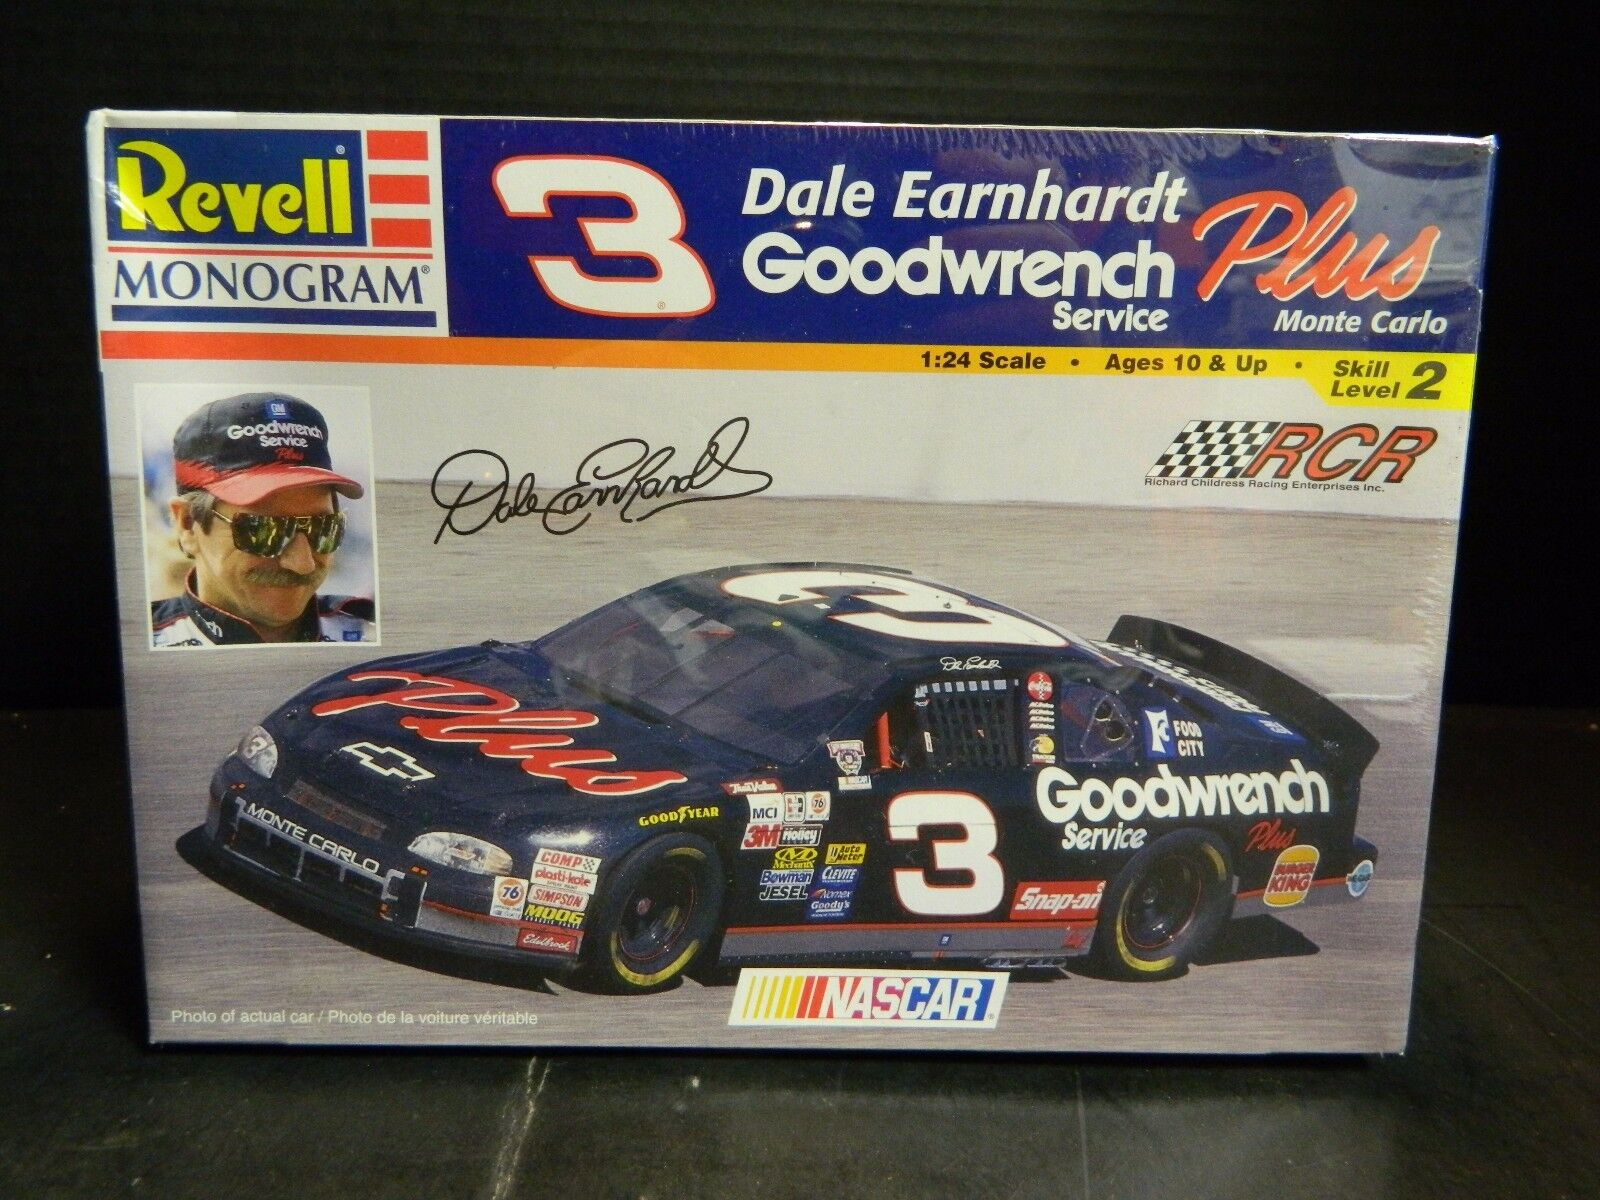 Racing-nascar 1995 Dale Earnhardt #3 Goodwrench Racing Team Phone Card Sealed Vintage Fs